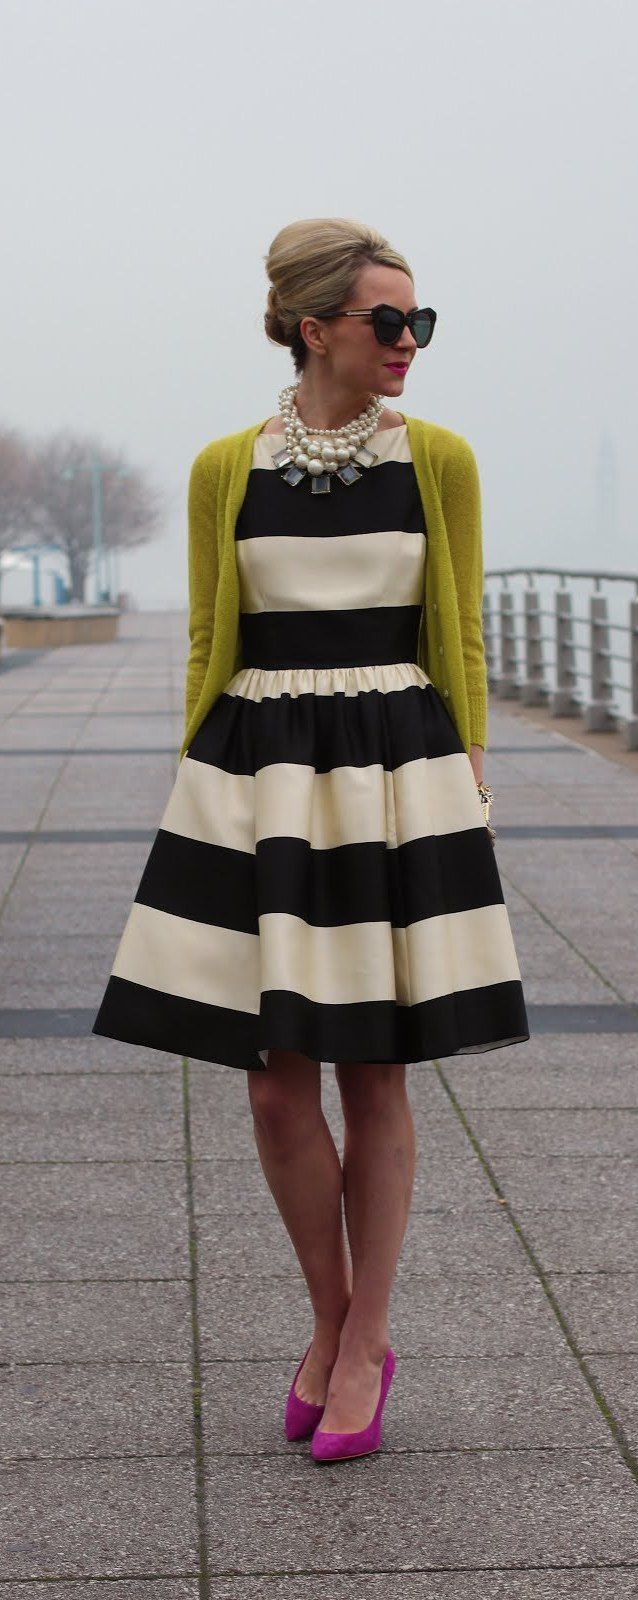 I want to make a dress like this for Lexi. It would be so cute that small. I know the perfect pattern.